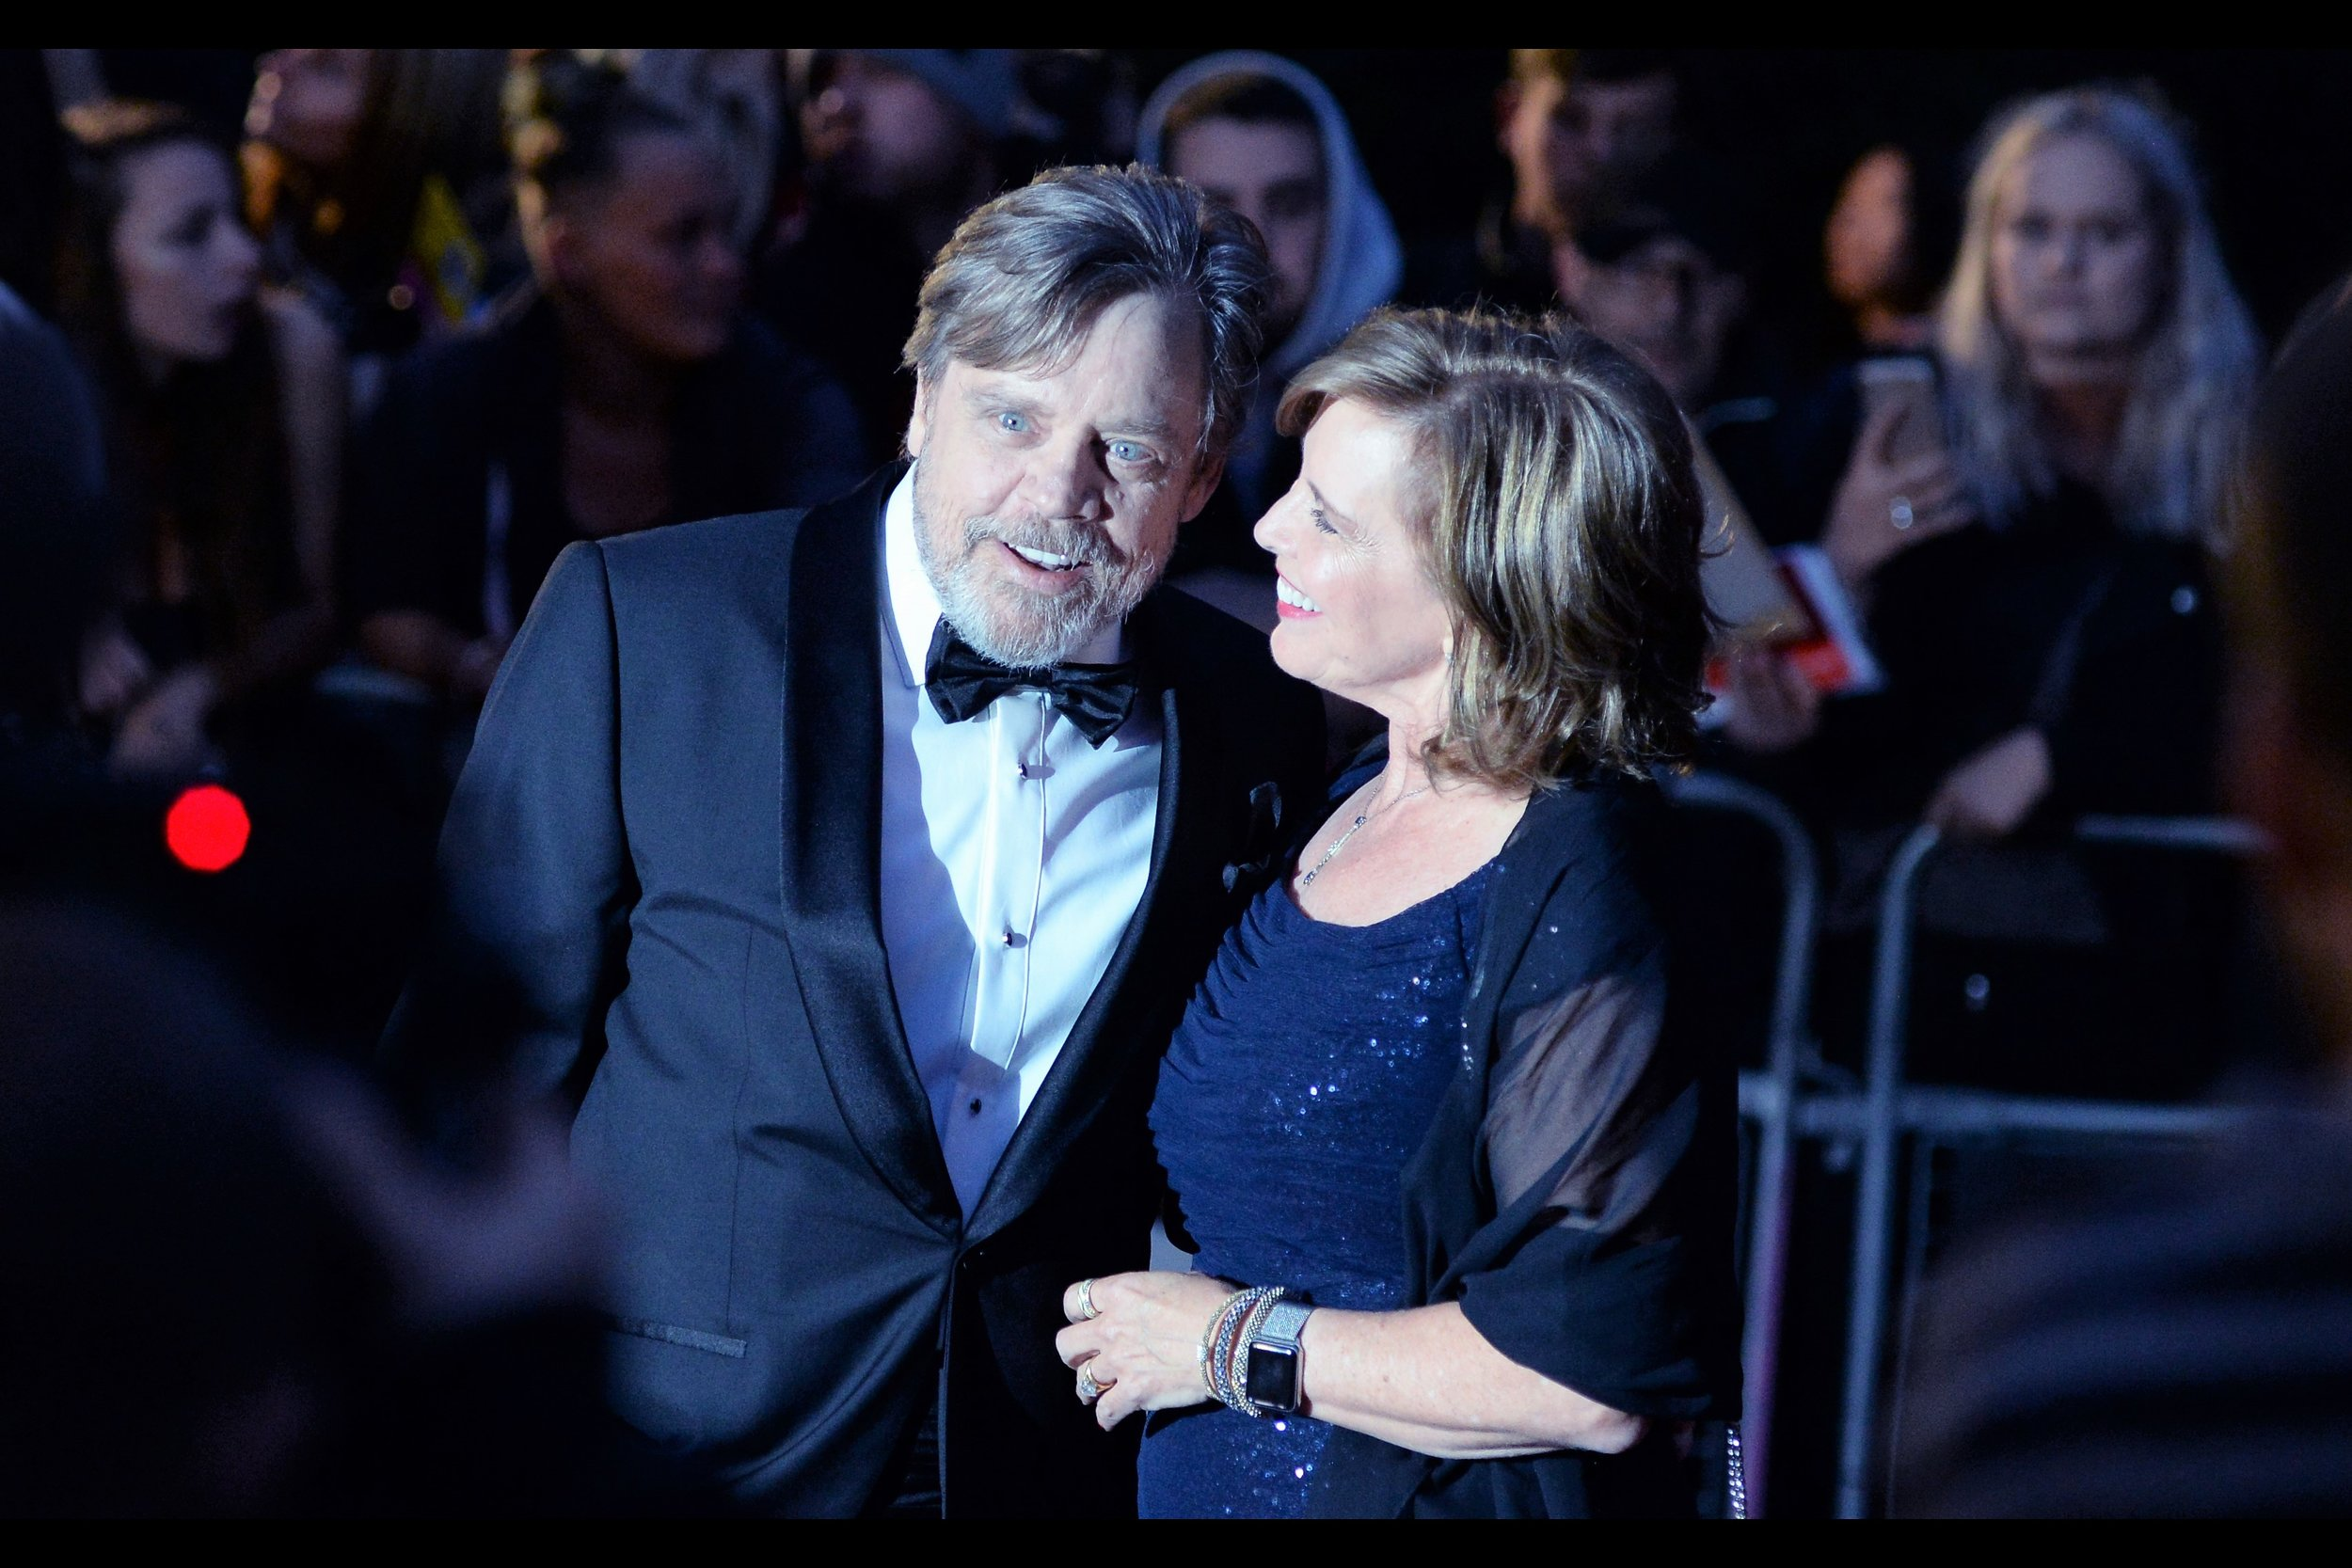 September 5th : This year the    GQ Men of the Year 'awards'    were at the Tate Modern - and Mark Hamill attended!